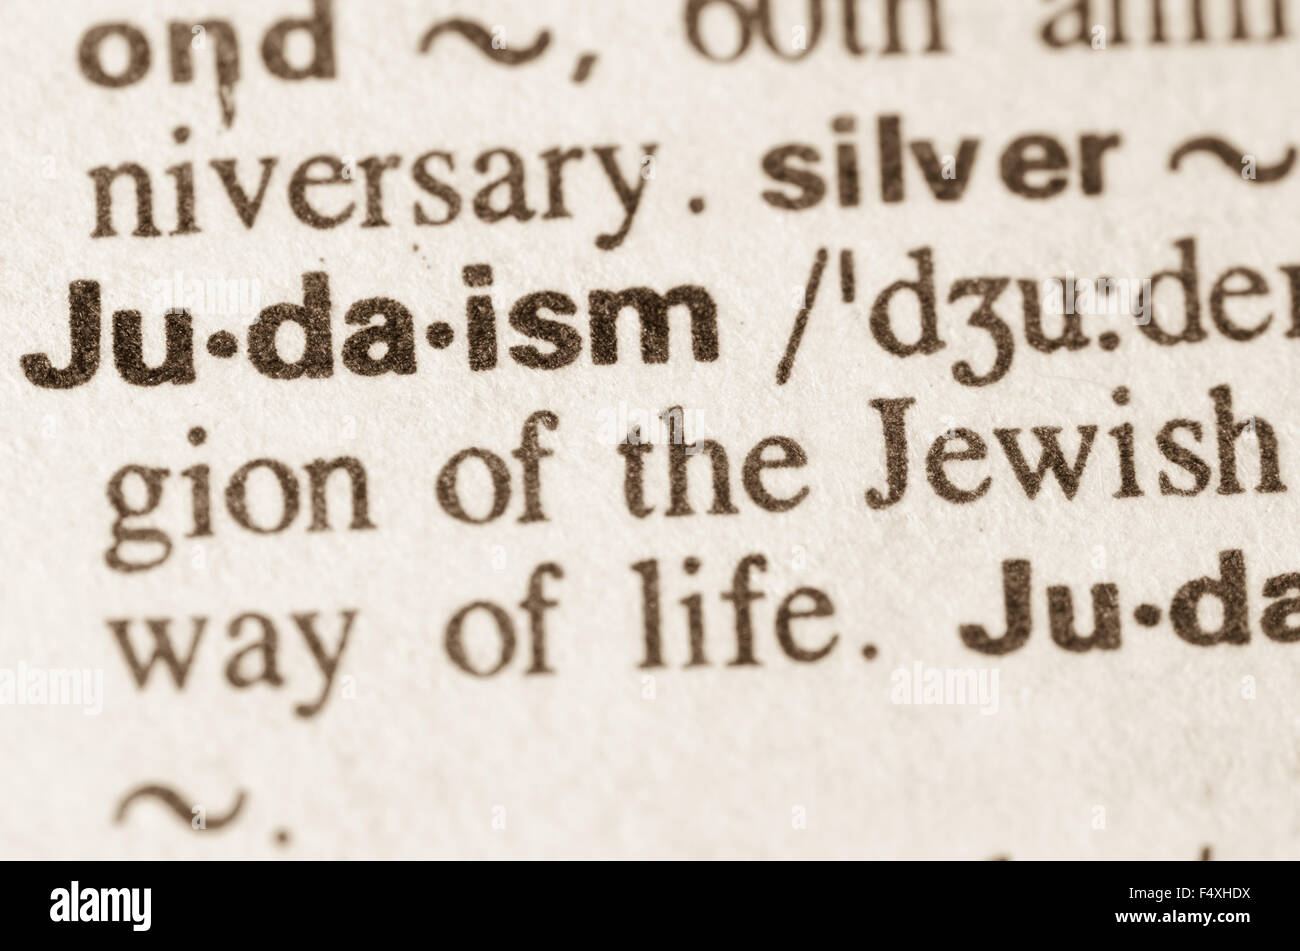 definition of word judaism in dictionary stock photo: 89094934 - alamy